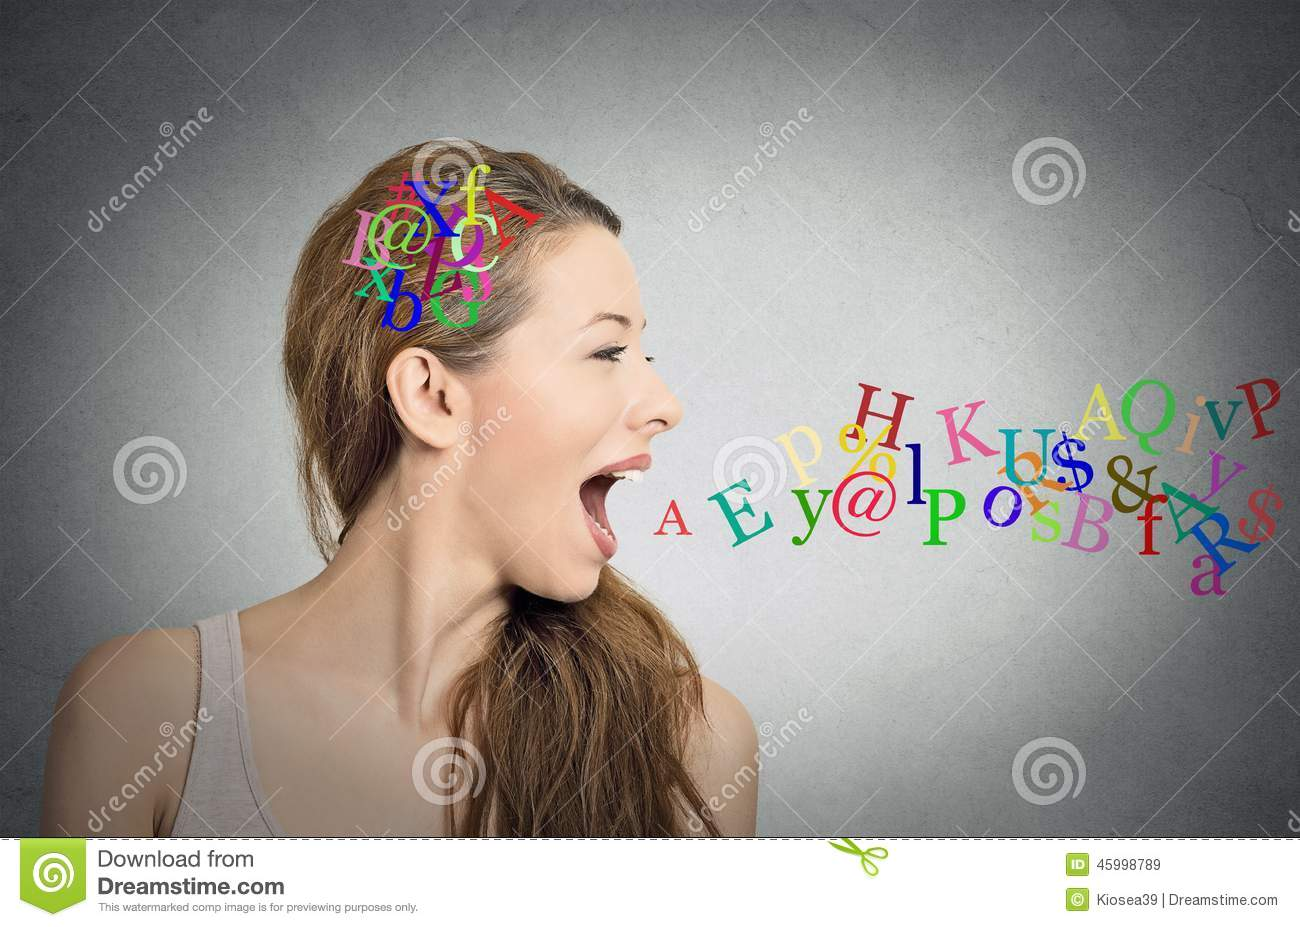 Woman talking, alphabet letters in her head coming out of mouth